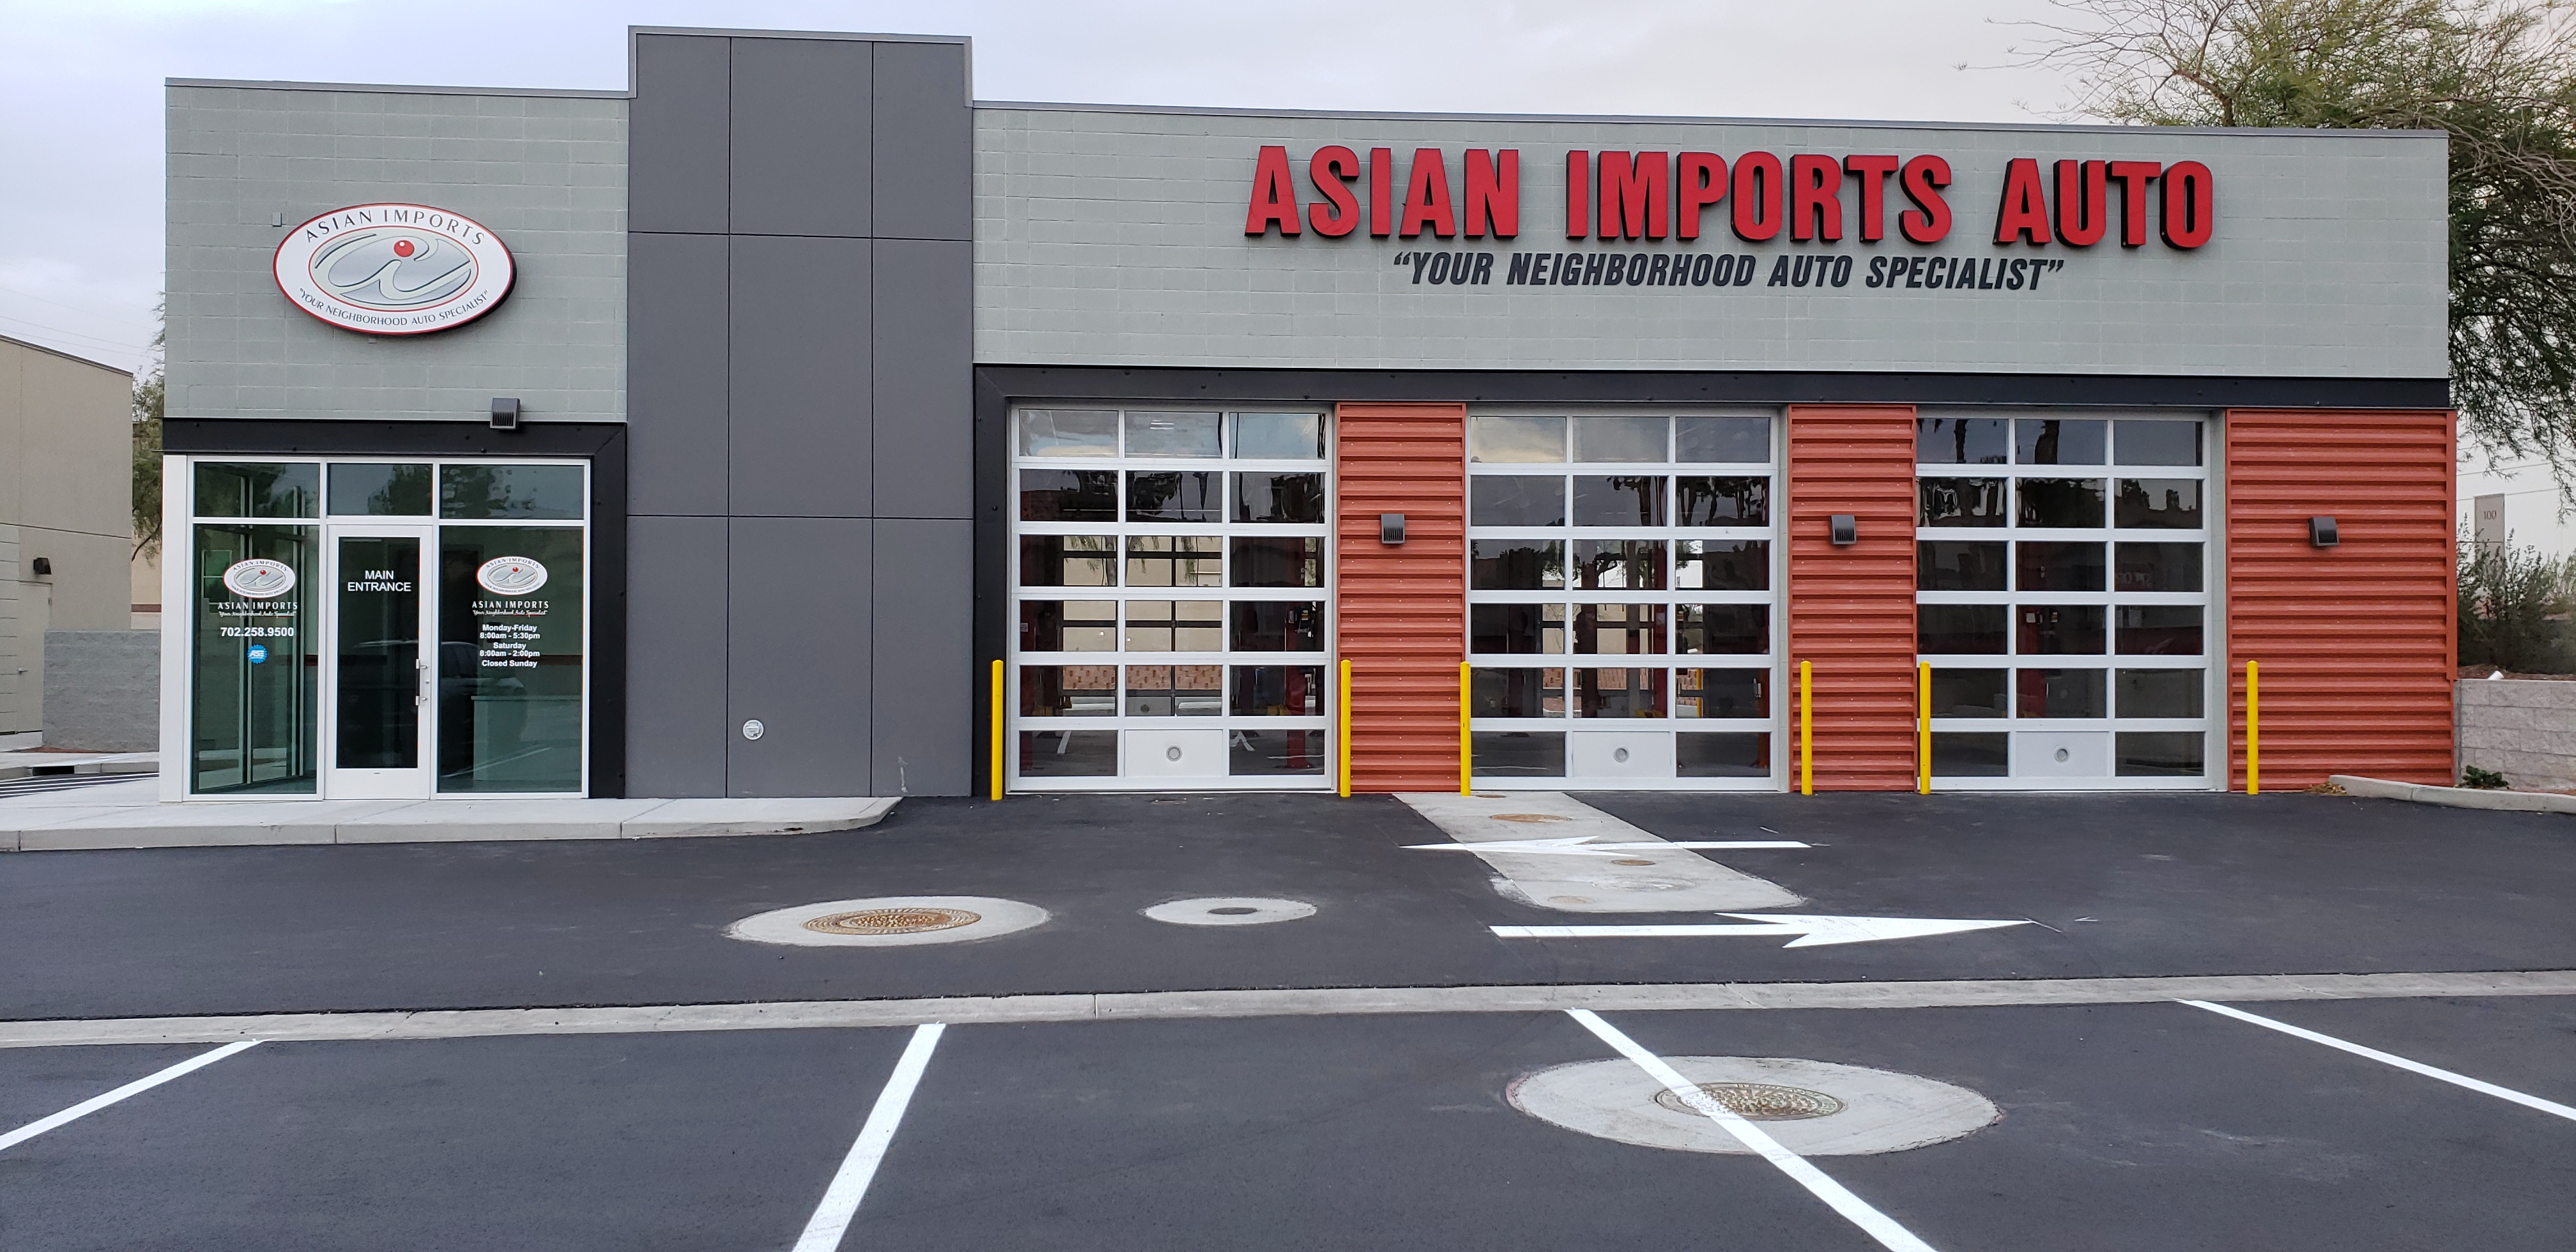 Asian Imports Auto Arrives in Henderson!